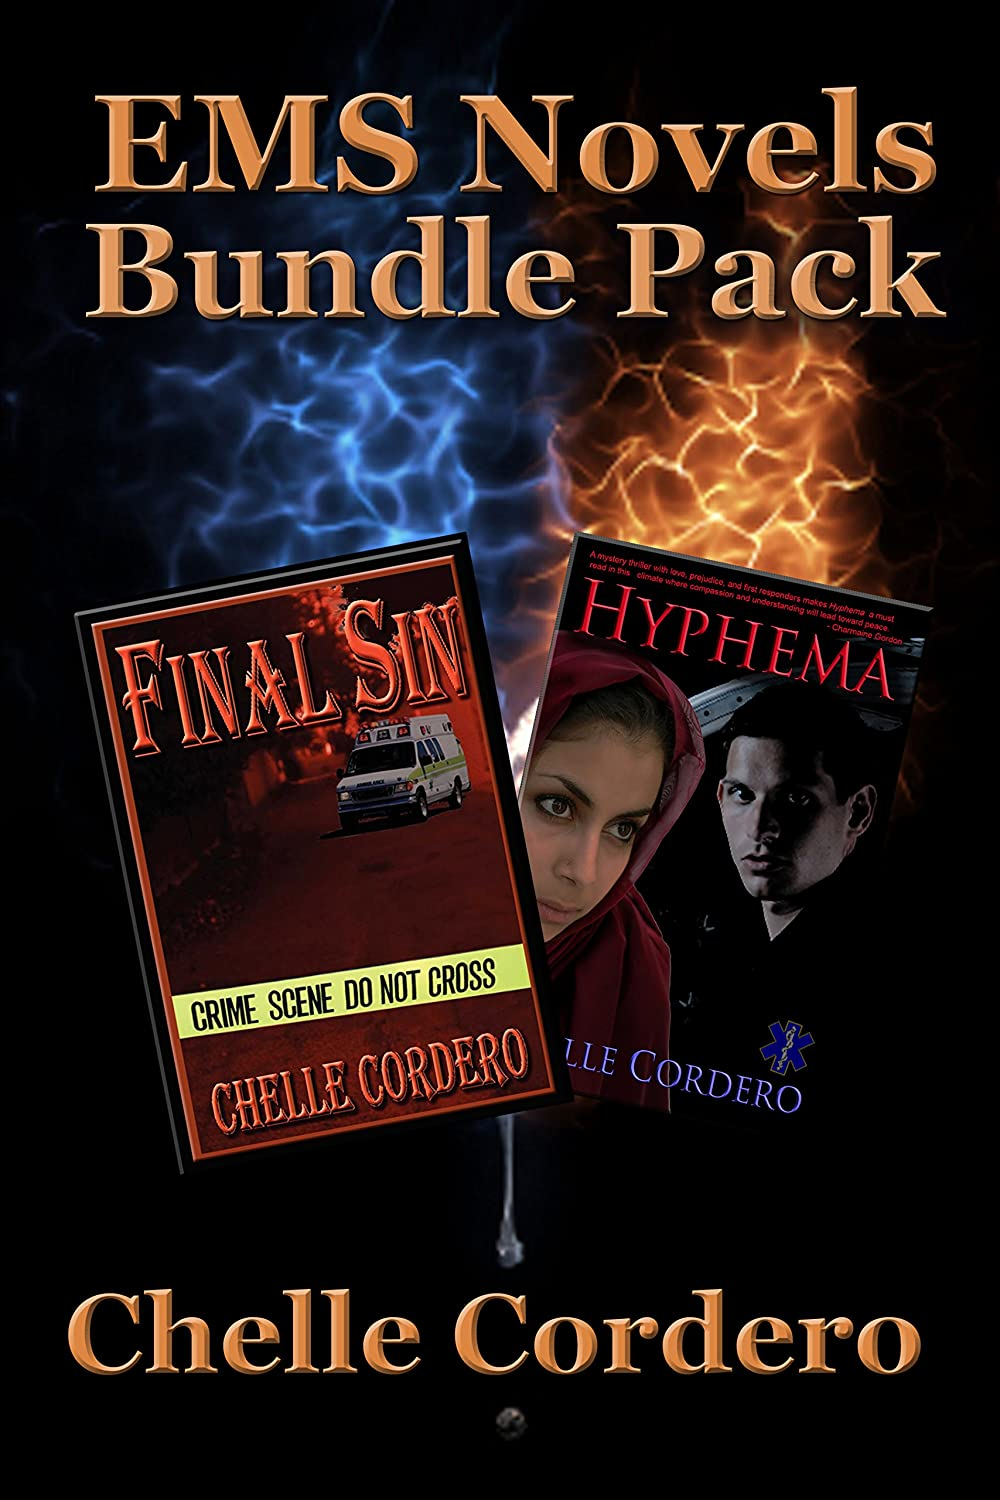 EMS Novels Bundle Pack [Kindle Edition] by Chelle Cordero